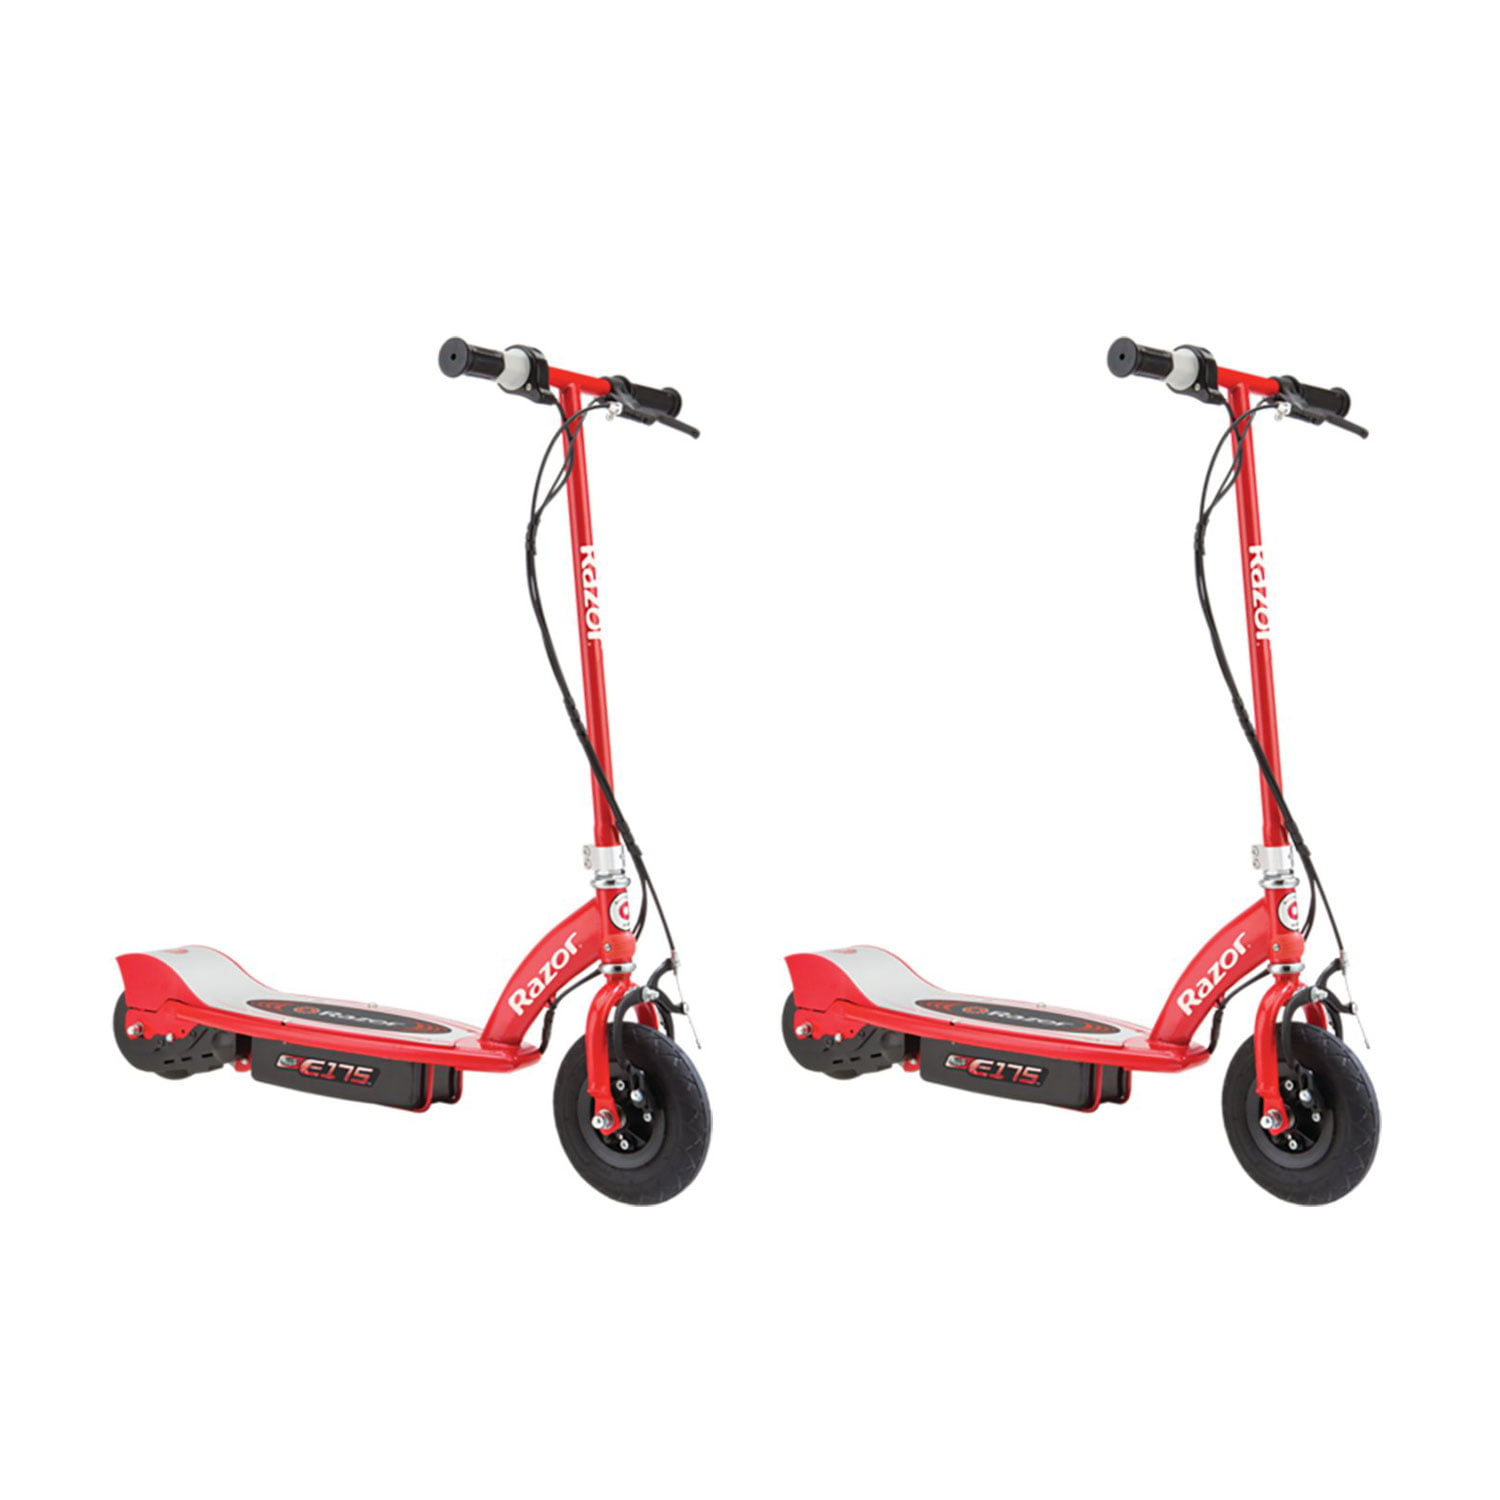 Razor E175 Motorized 24V Rechargeable Electric Power Kids Scooter, Red (2 Pack) by Razor